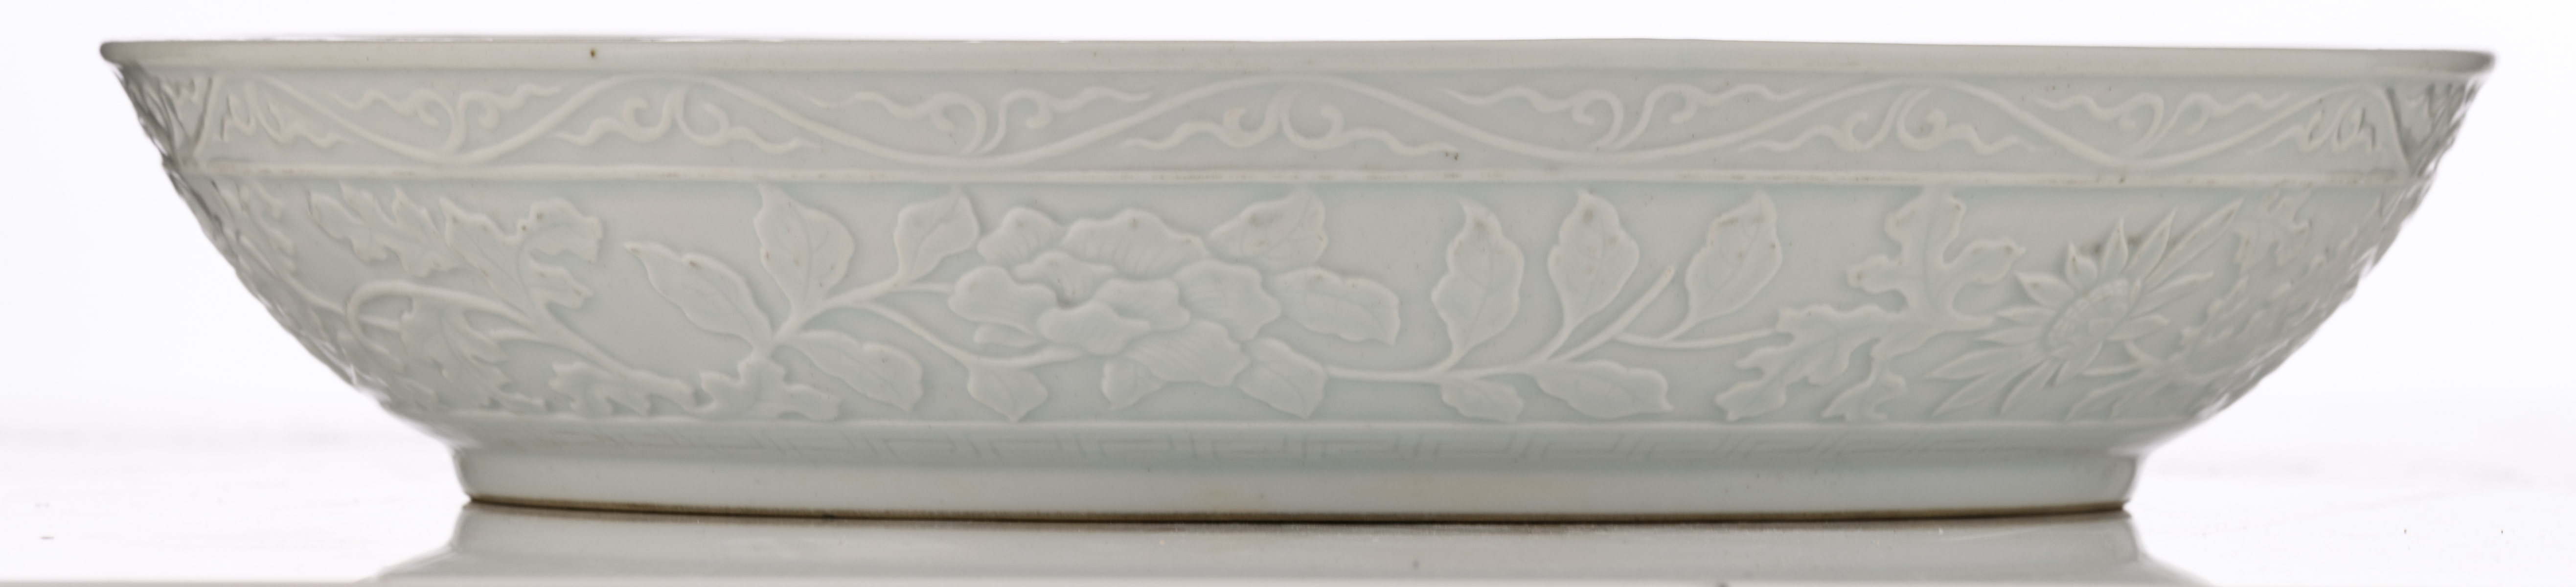 Lot 28 - A Chinese floral relief decorated white glazed charger, the well with a lotus bouquet, H 7 - ø 35,